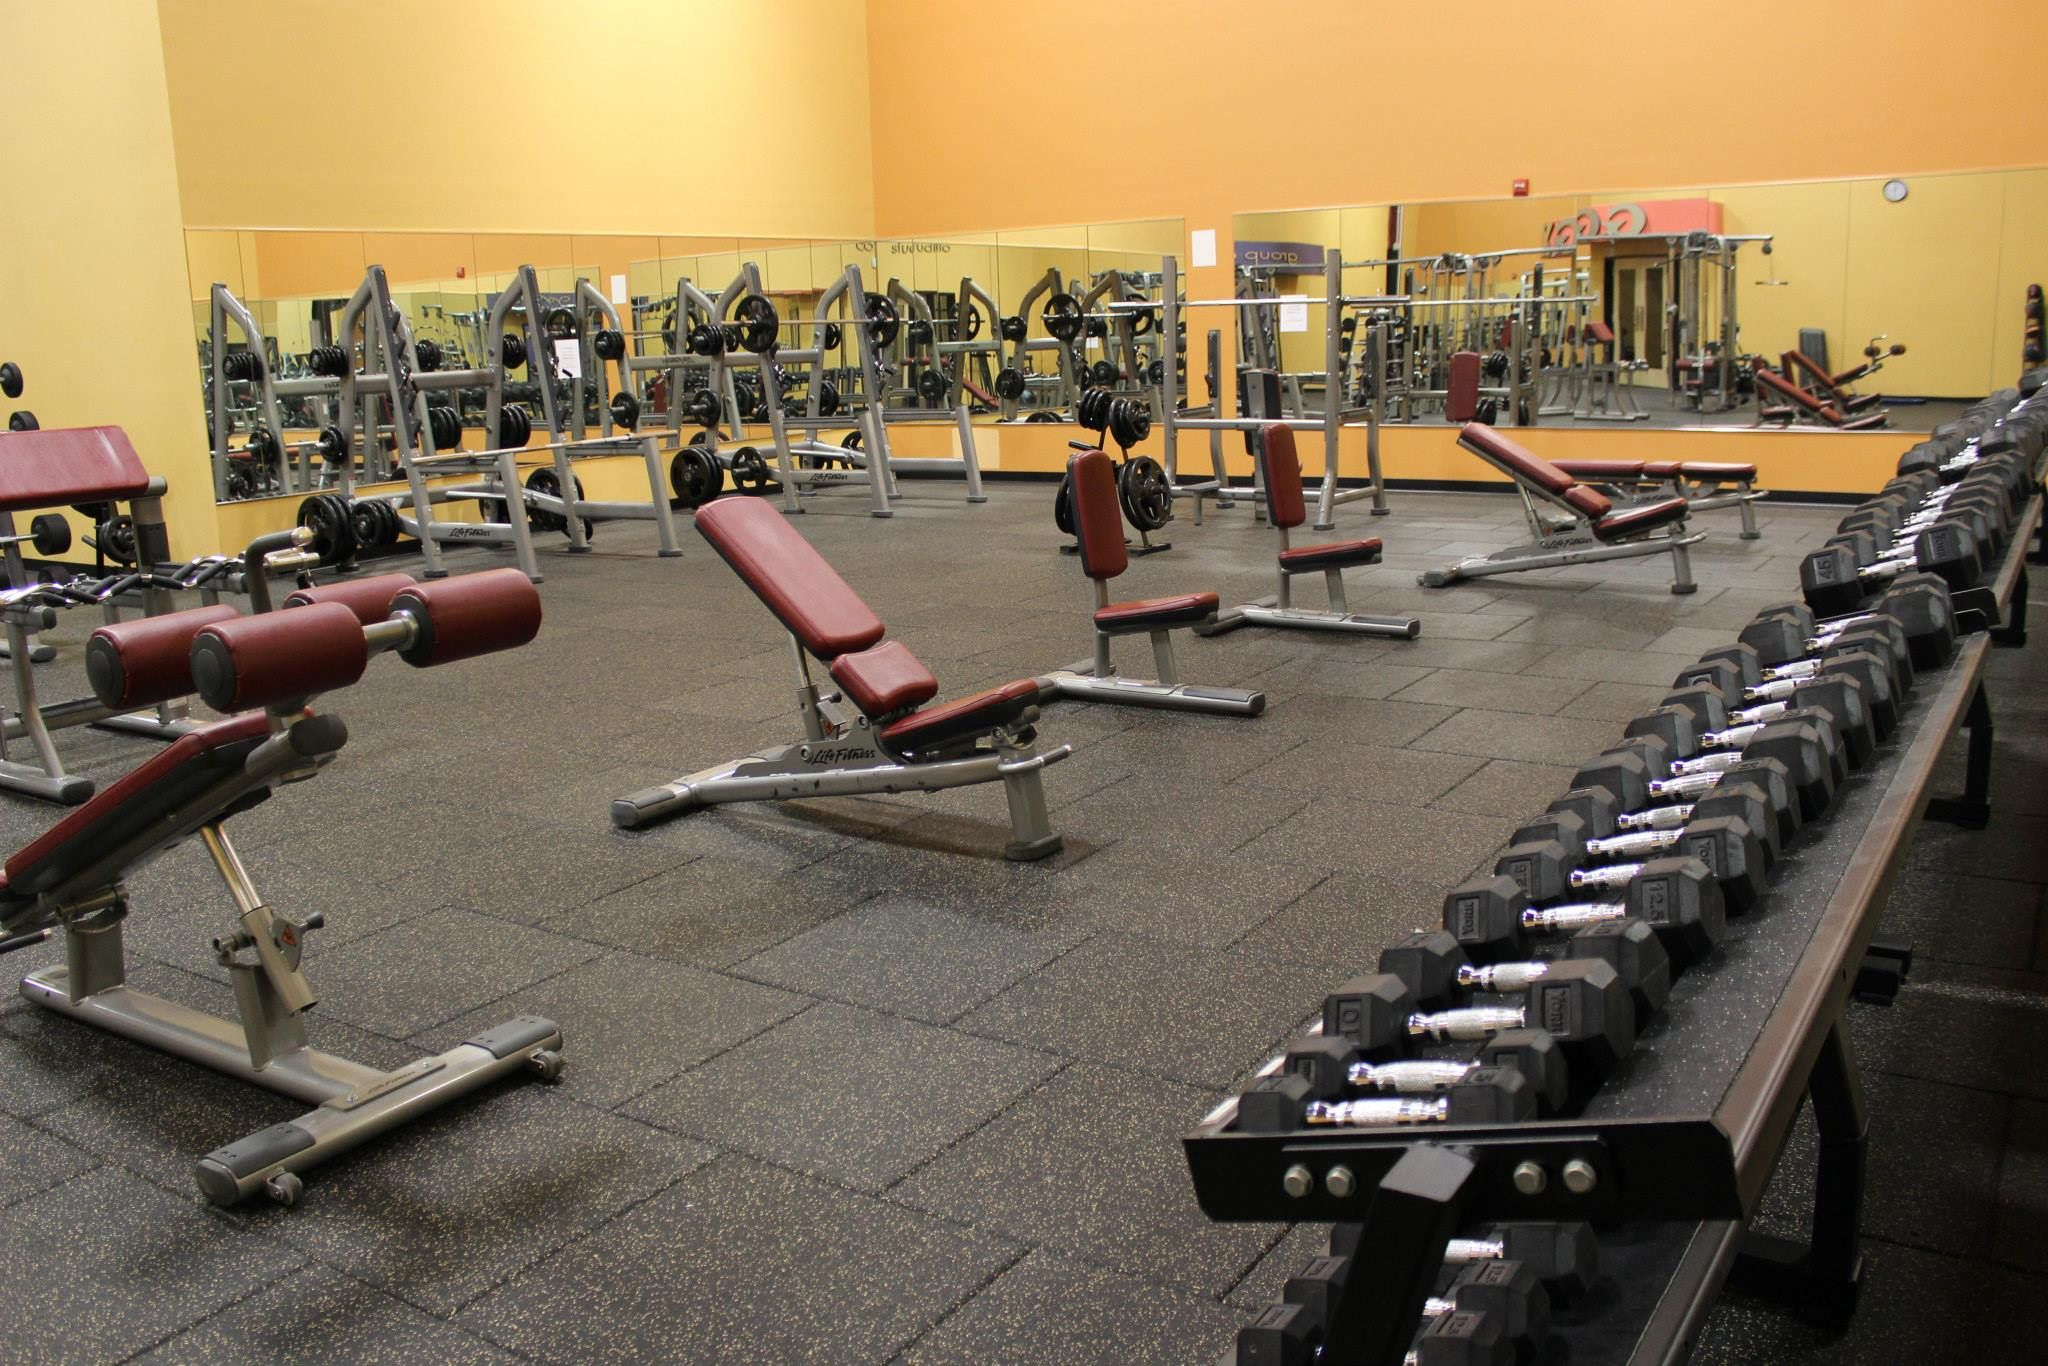 Thor Pro Tile Installation For Golds Gym Eldersburg In Eldersburg,